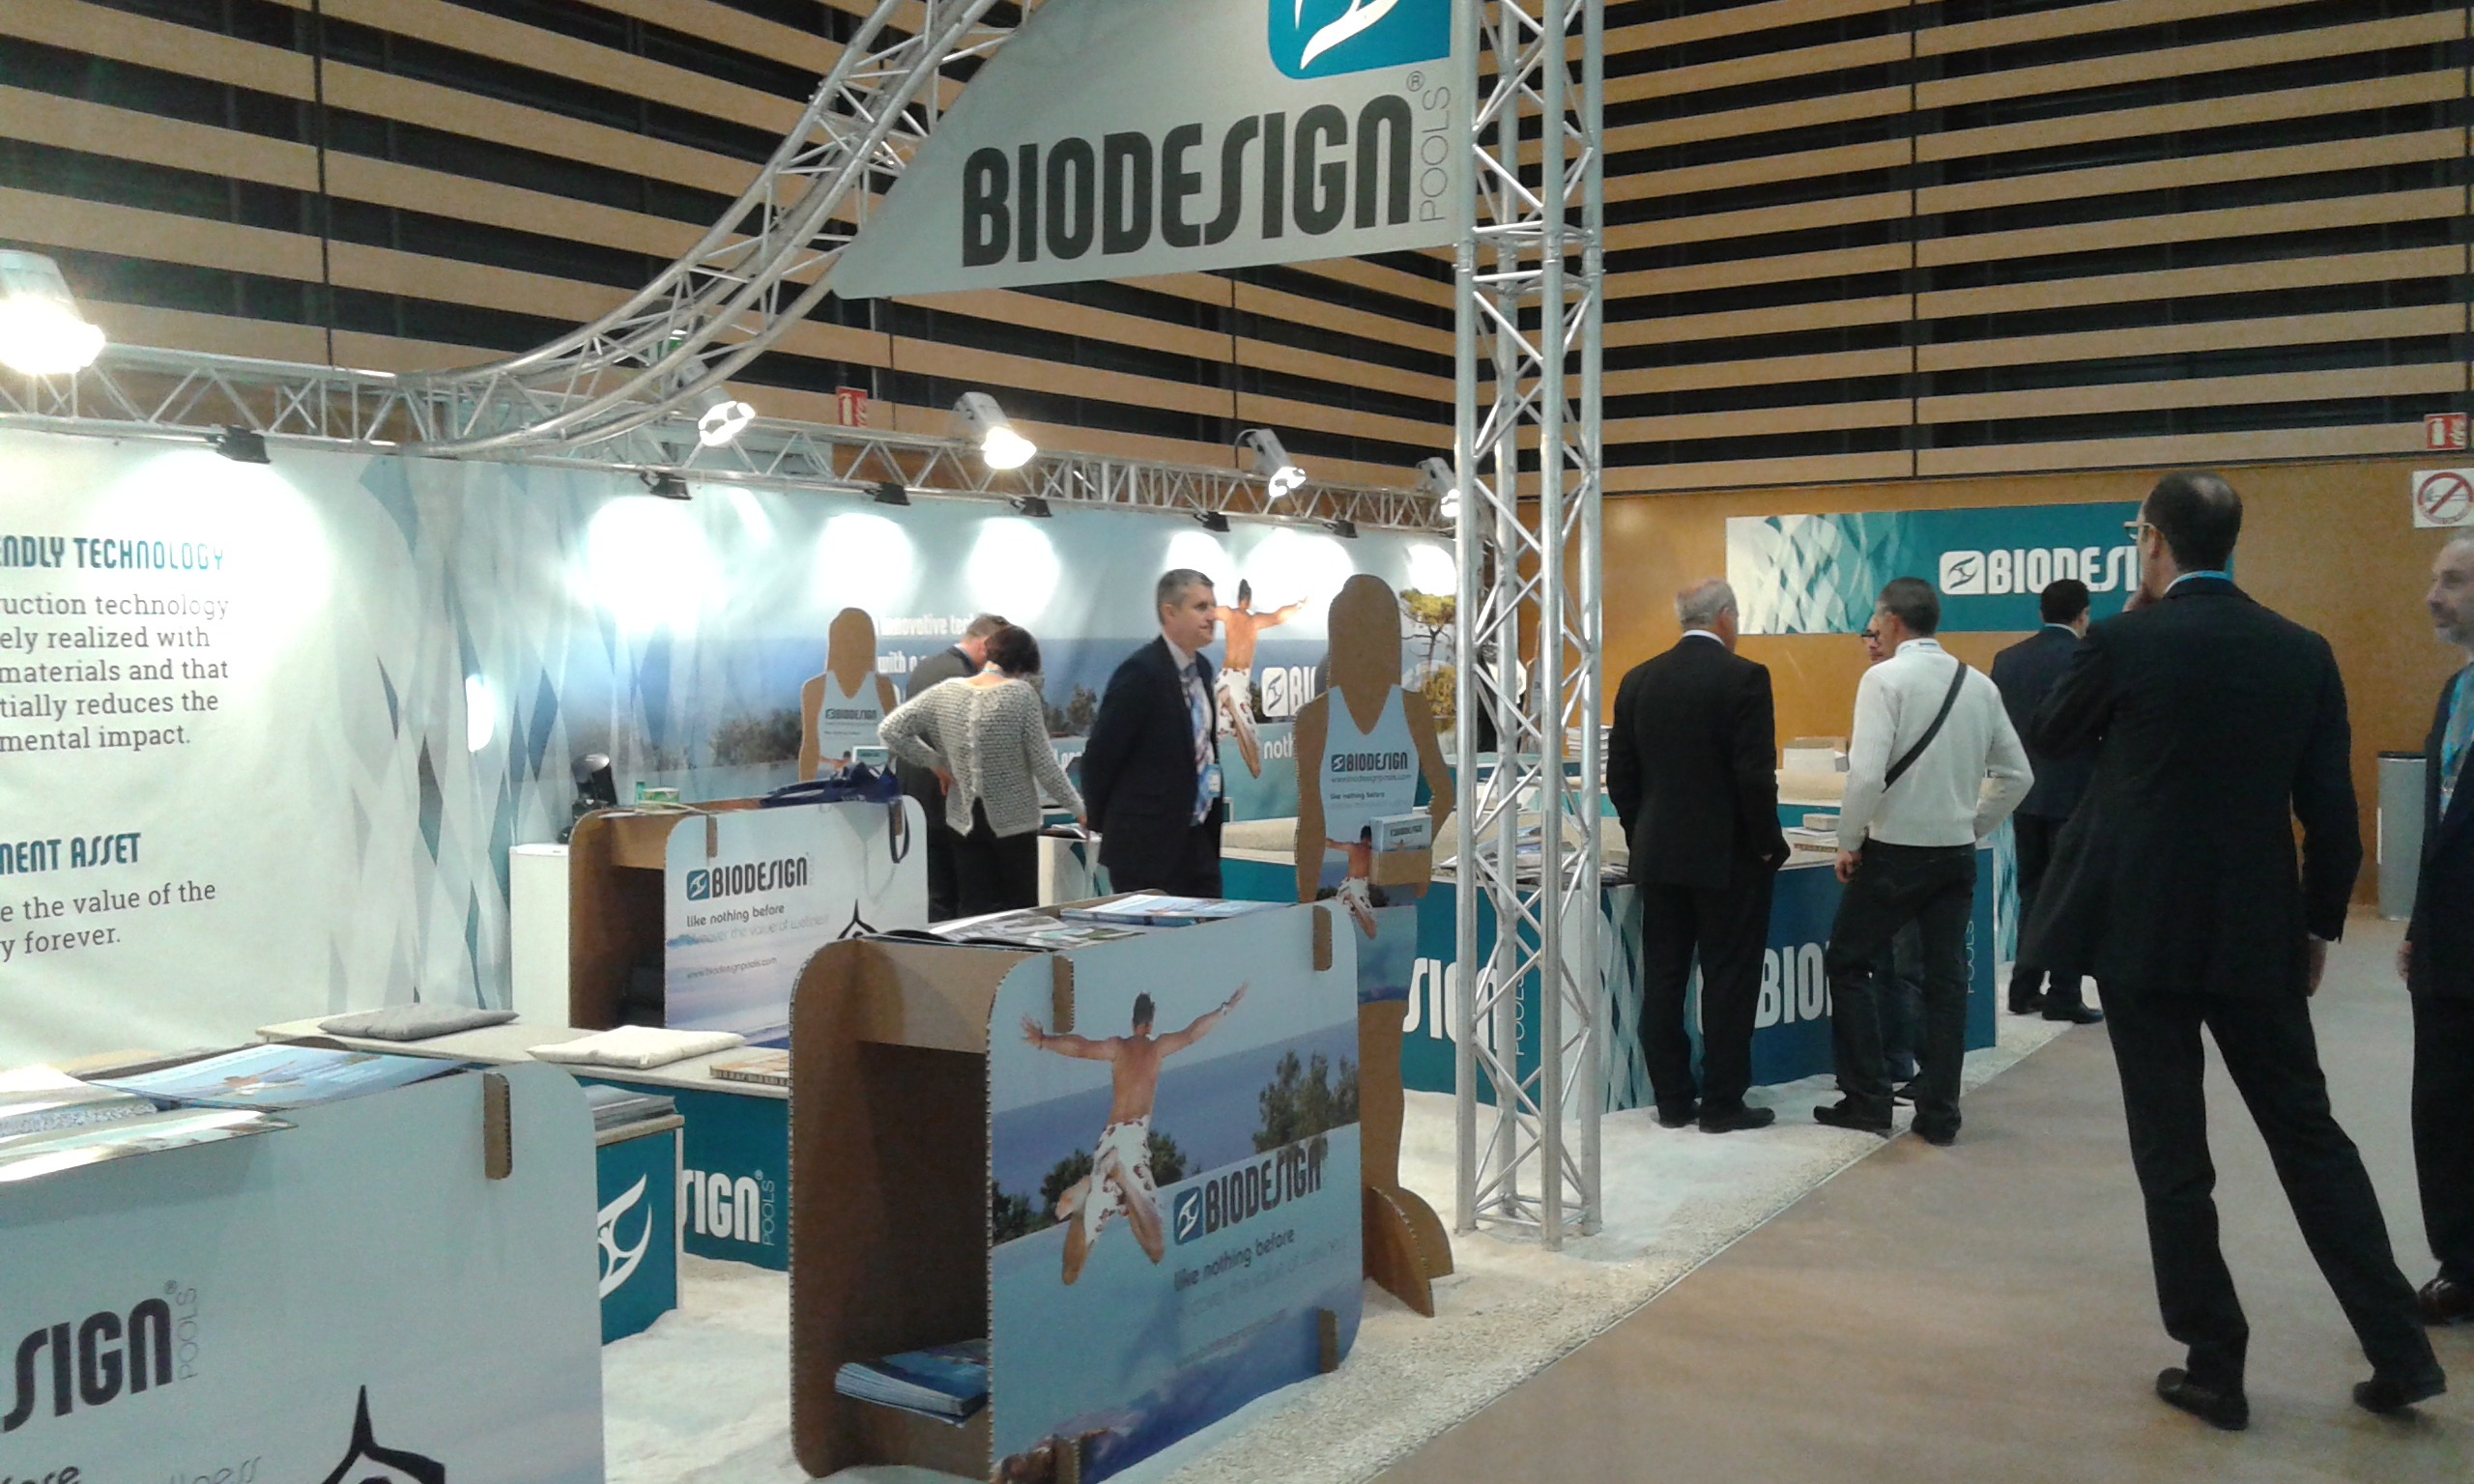 biodesign stand at piscine global 2014